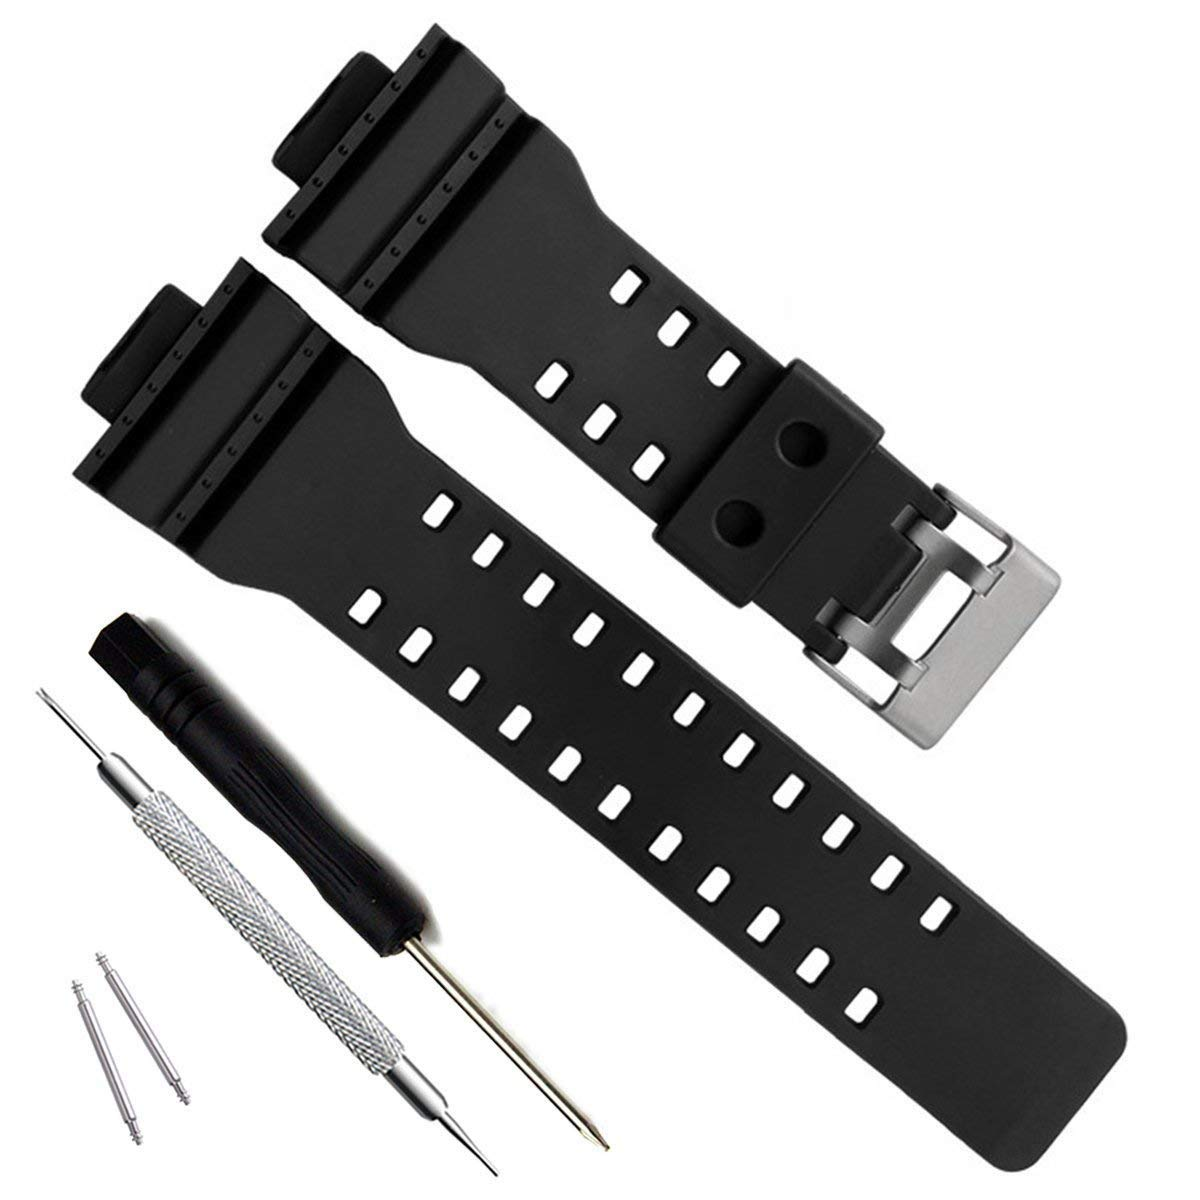 Natural Resin Replacement Watch Band Strap for Casio Mens G-Shock GD120/GA-100/GA-110/GA-100C (Black) by MyTime